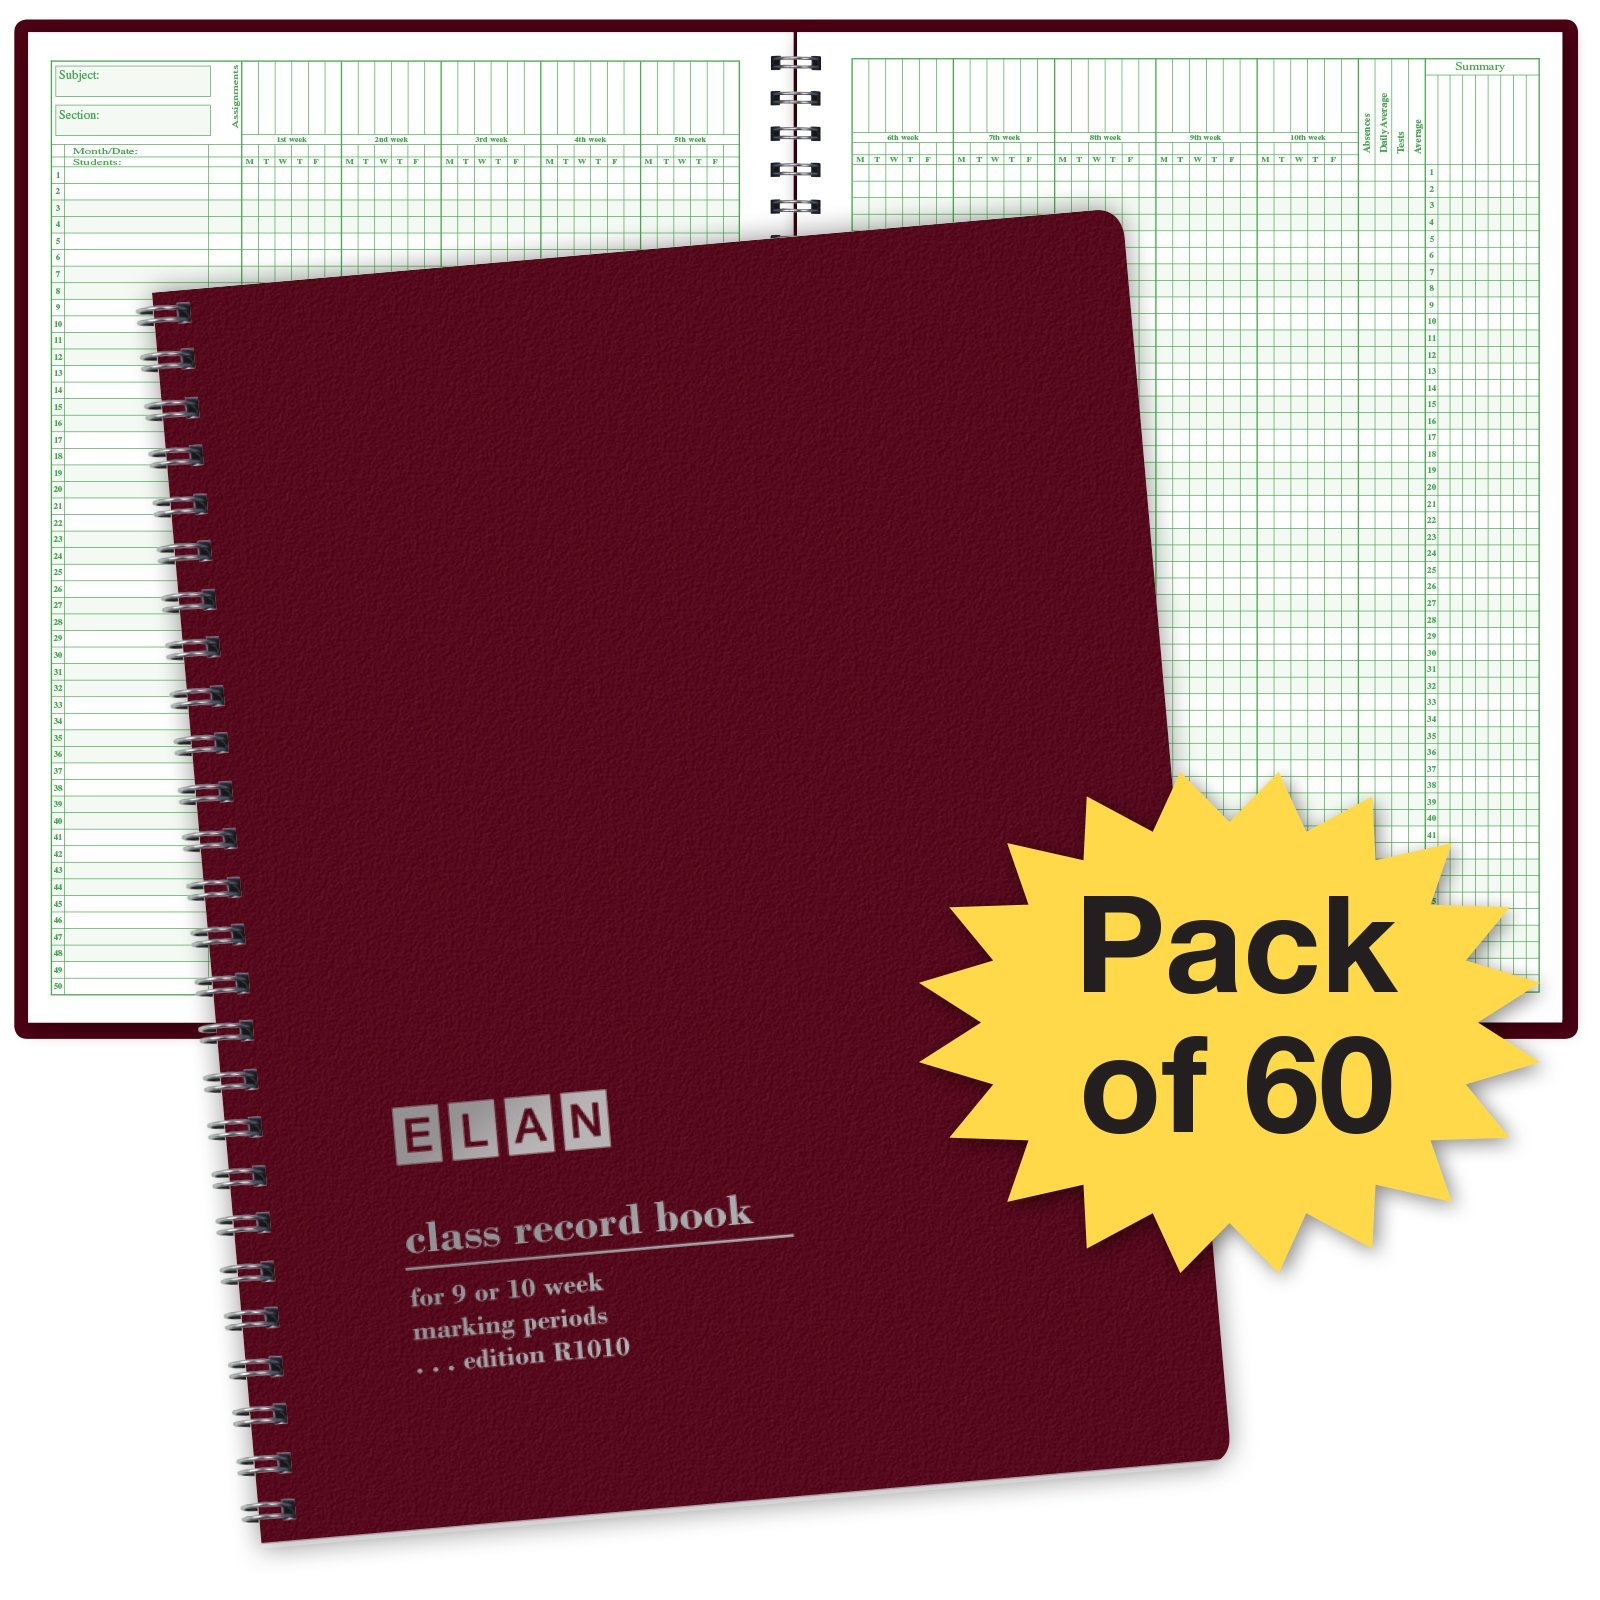 Class Record Book for 9-10 Weeks. 50 Names R1010 (Maroon - Pack of 60)